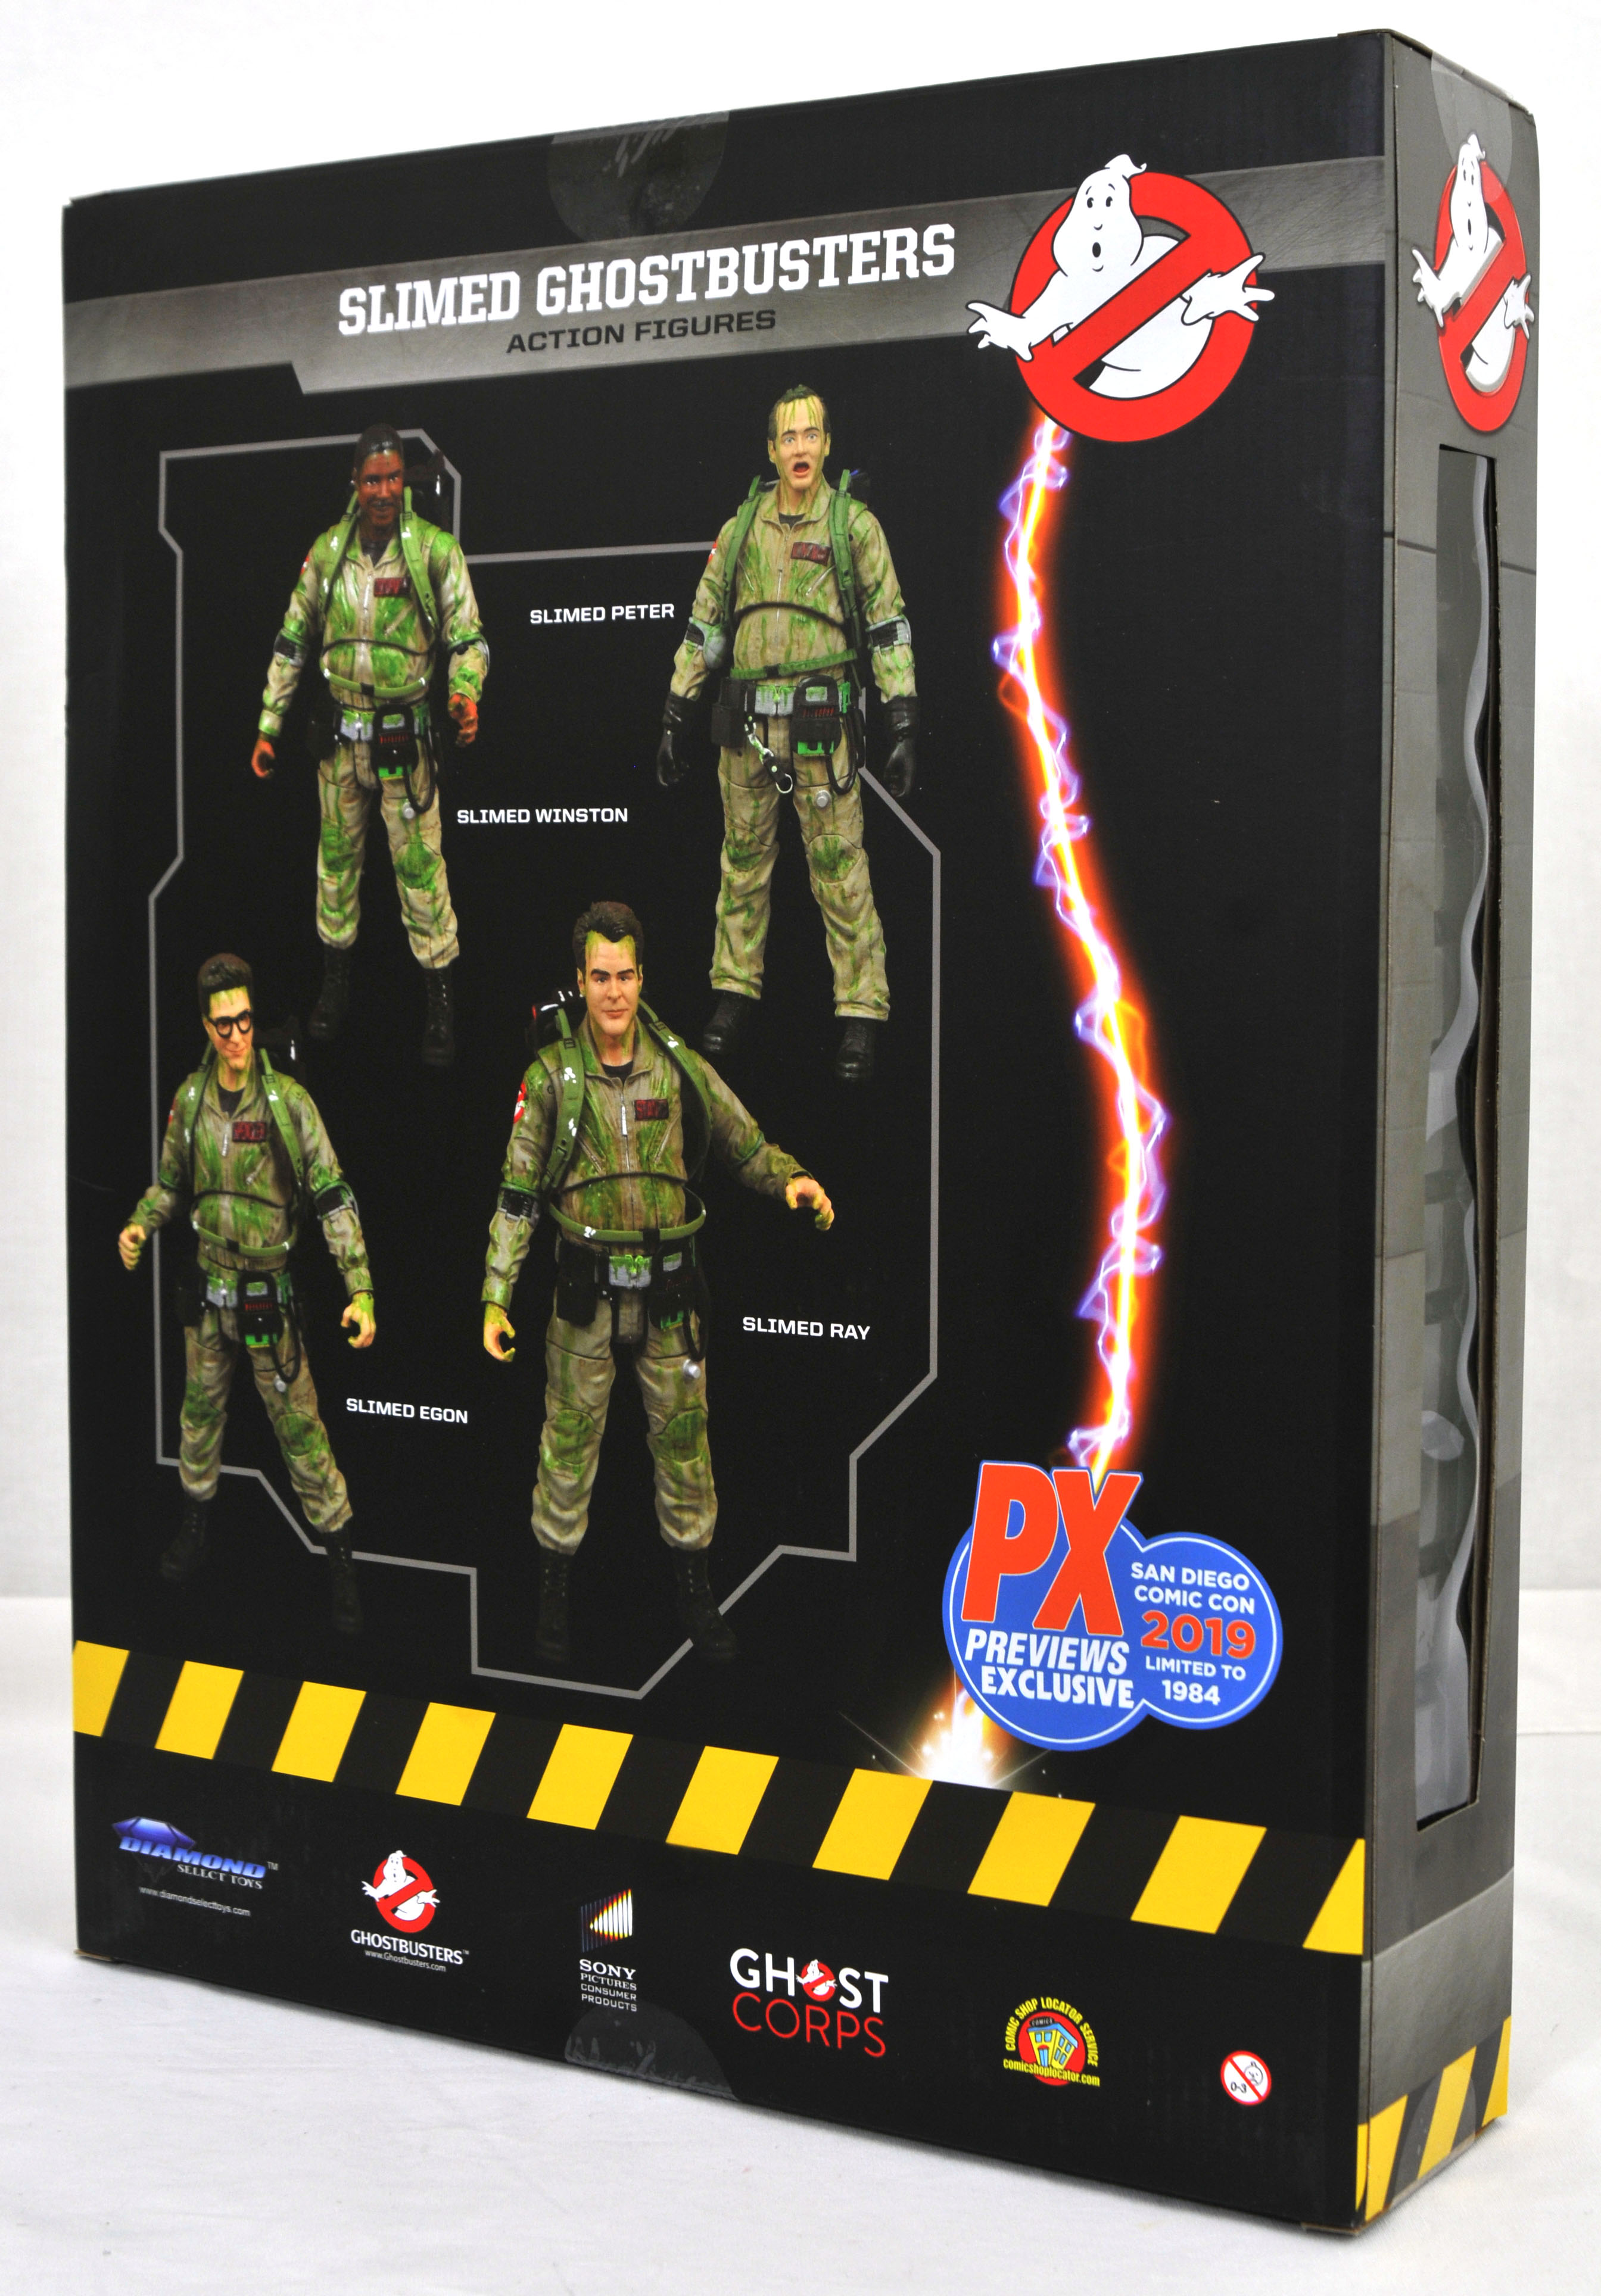 SDCC 2019 GHOSTBUSTERS ACTION FIGURE BOX SET